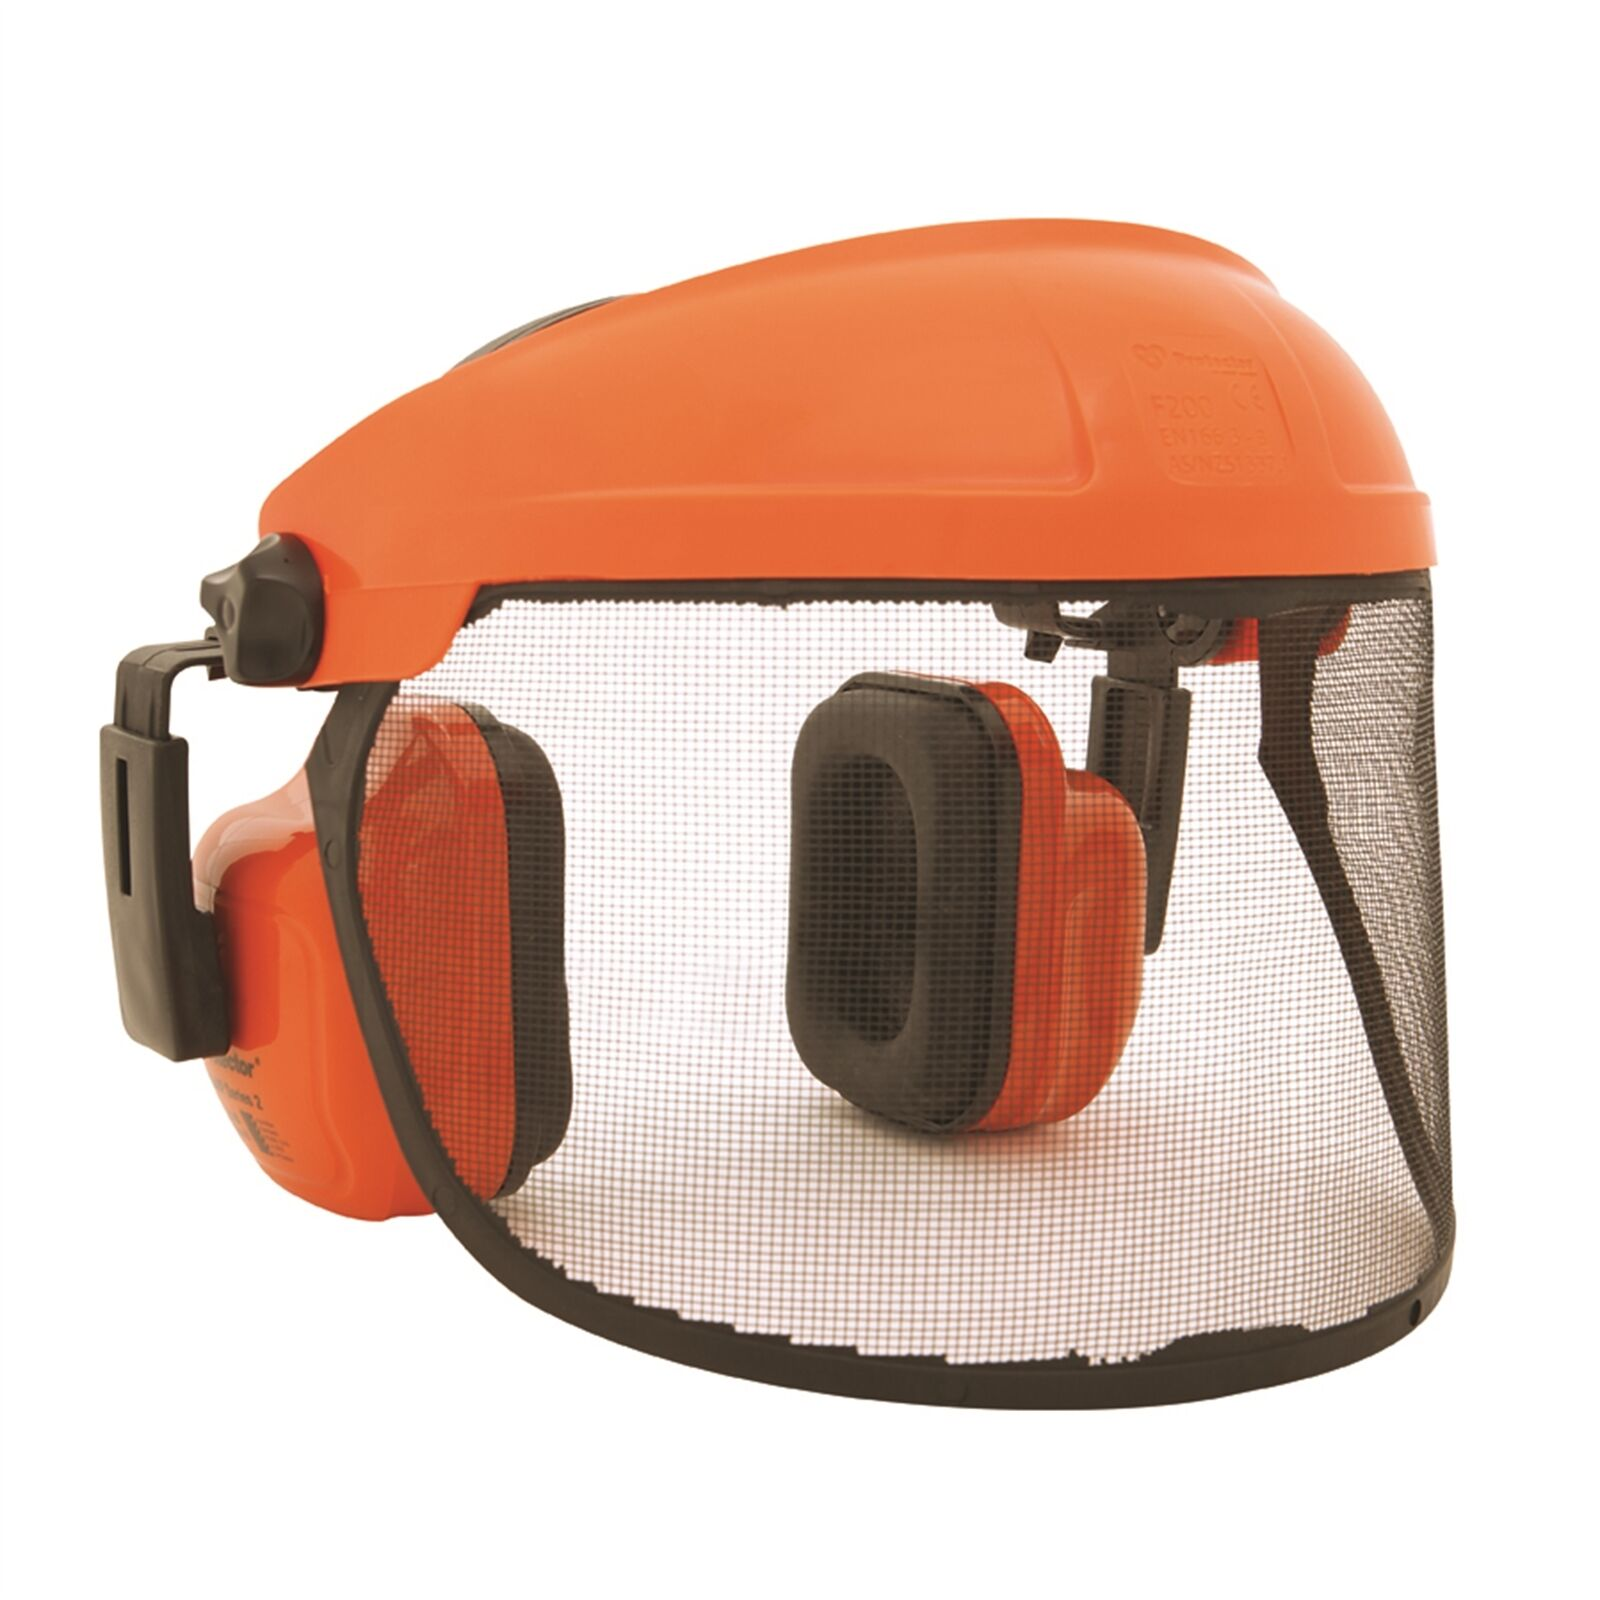 Protector CHAINSAW VISOR AND EARMUFFS Easy Fit Adjustment Australian Made